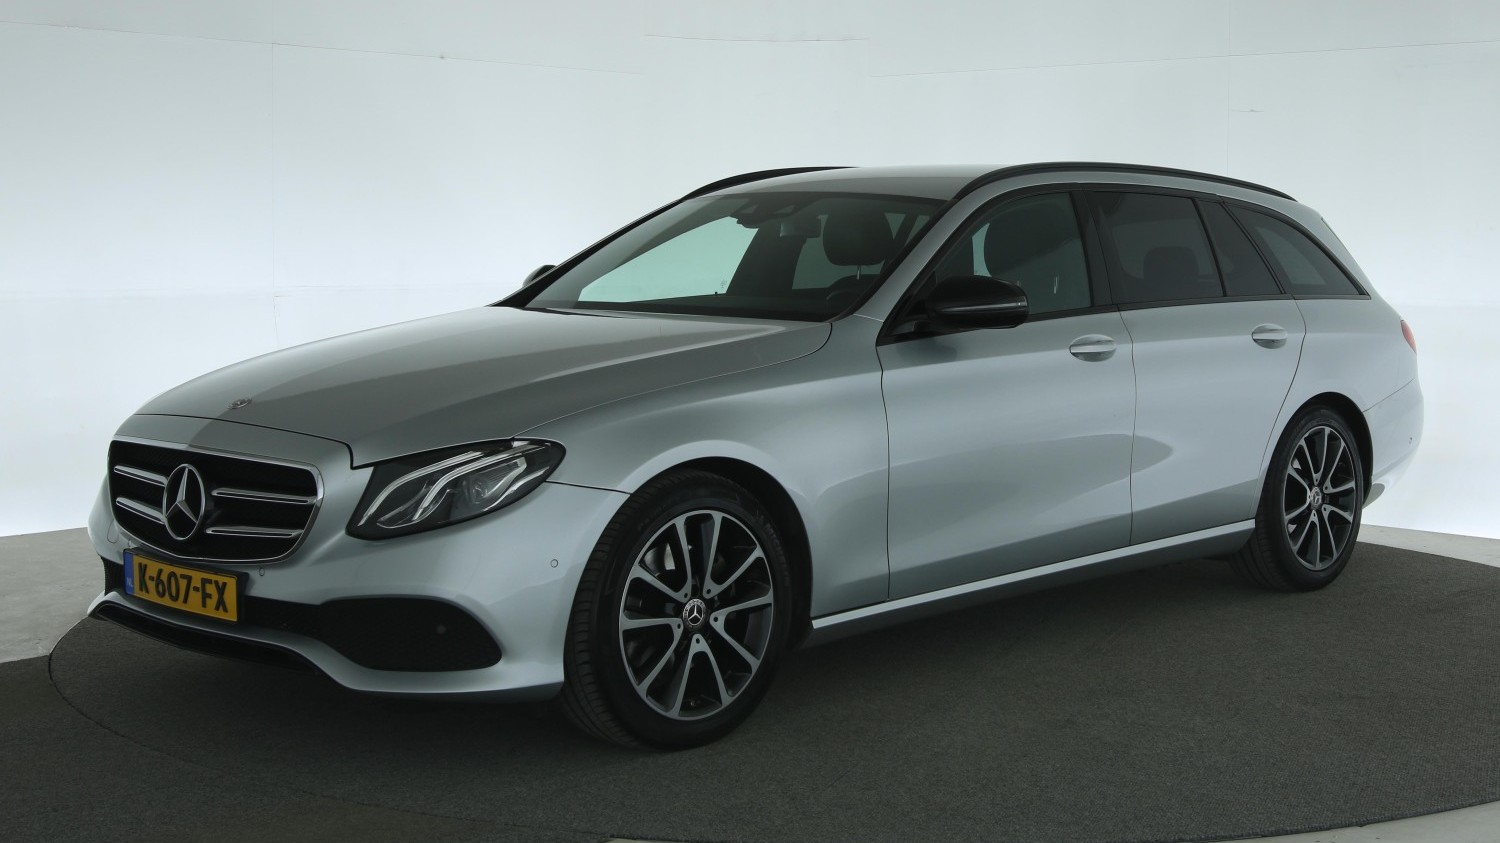 Mercedes-Benz E-Klasse Station 2017 K-607-FX 1